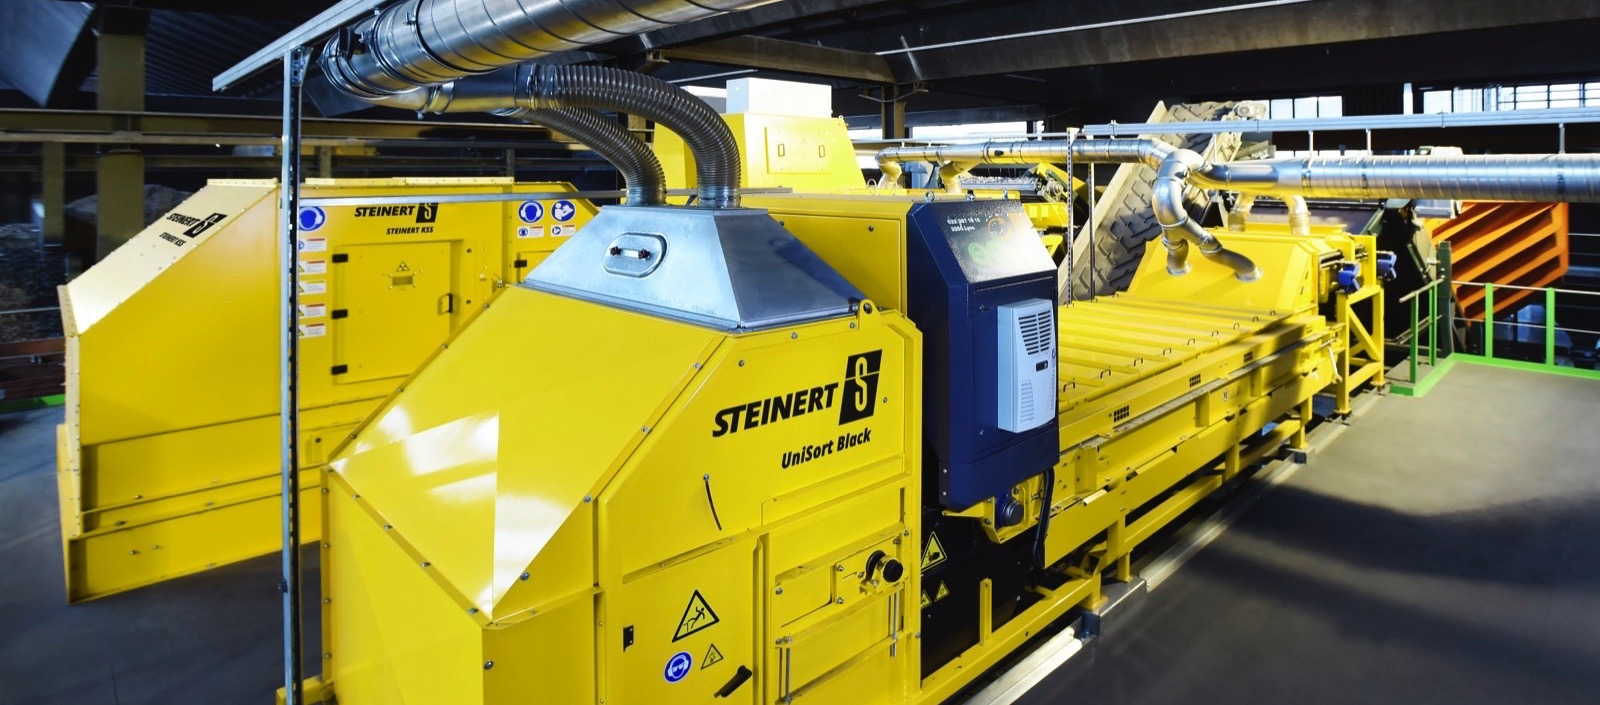 Steinert: A flexible Combination Sorting Solution for Electronic Waste